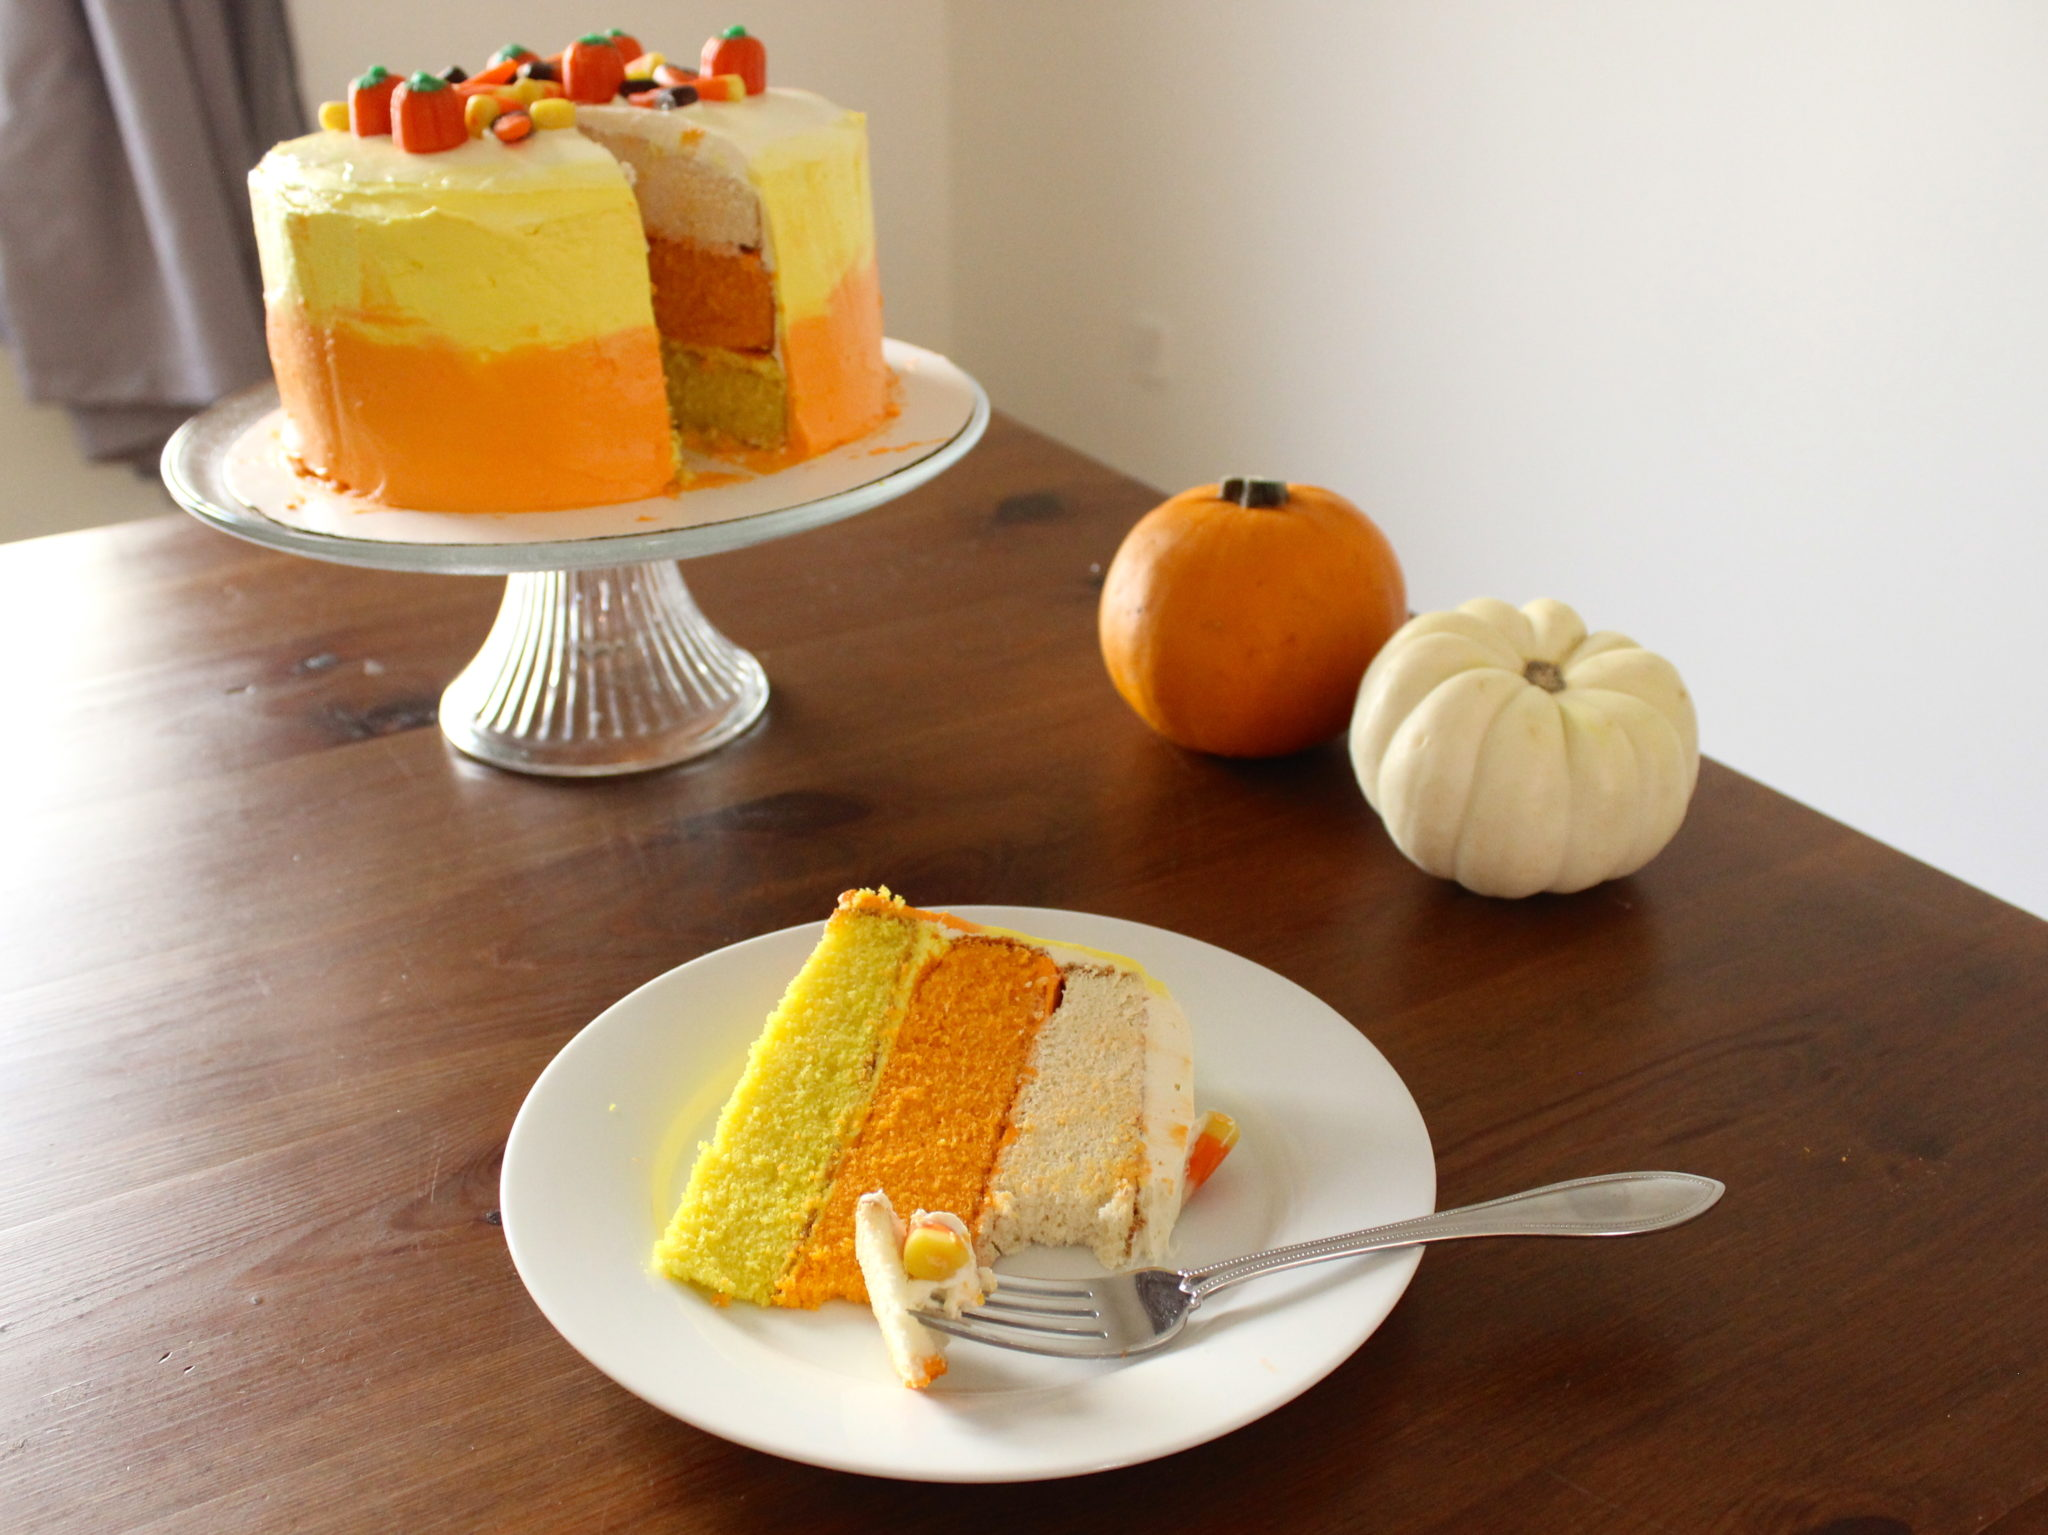 candy corn cake for Halloween